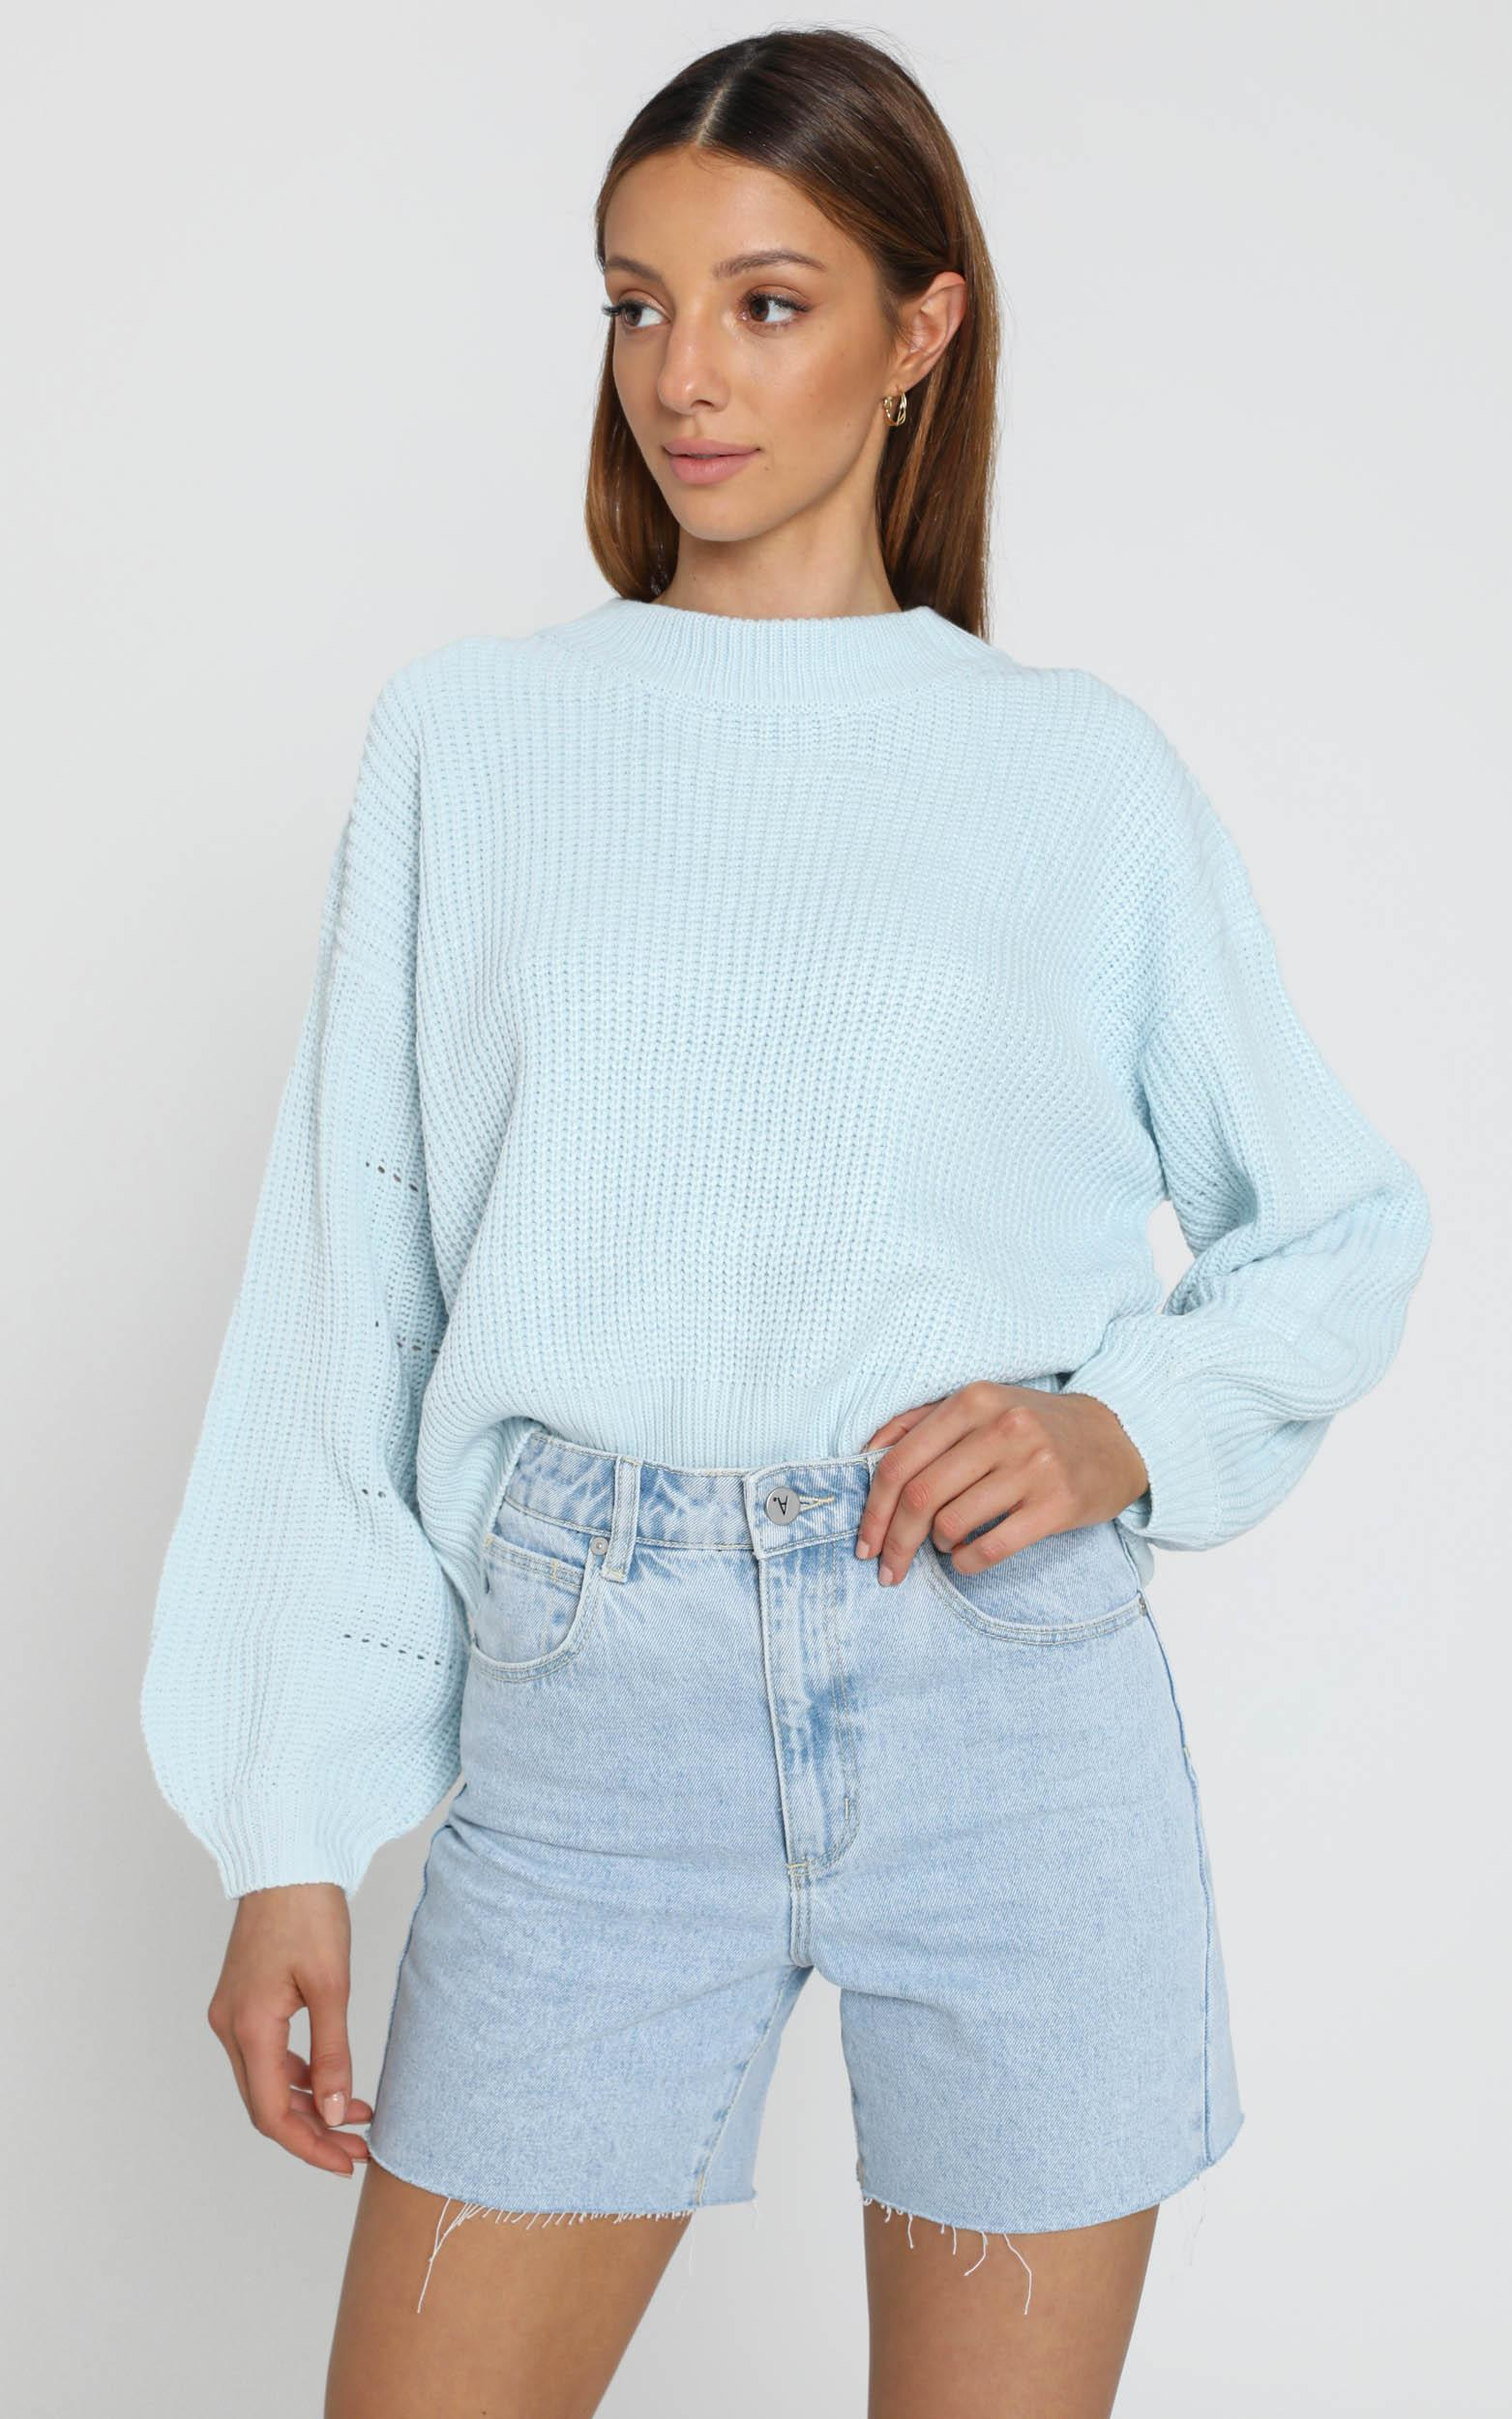 Cesca Knit Jumper in Pastel Blue - S, Blue, hi-res image number null